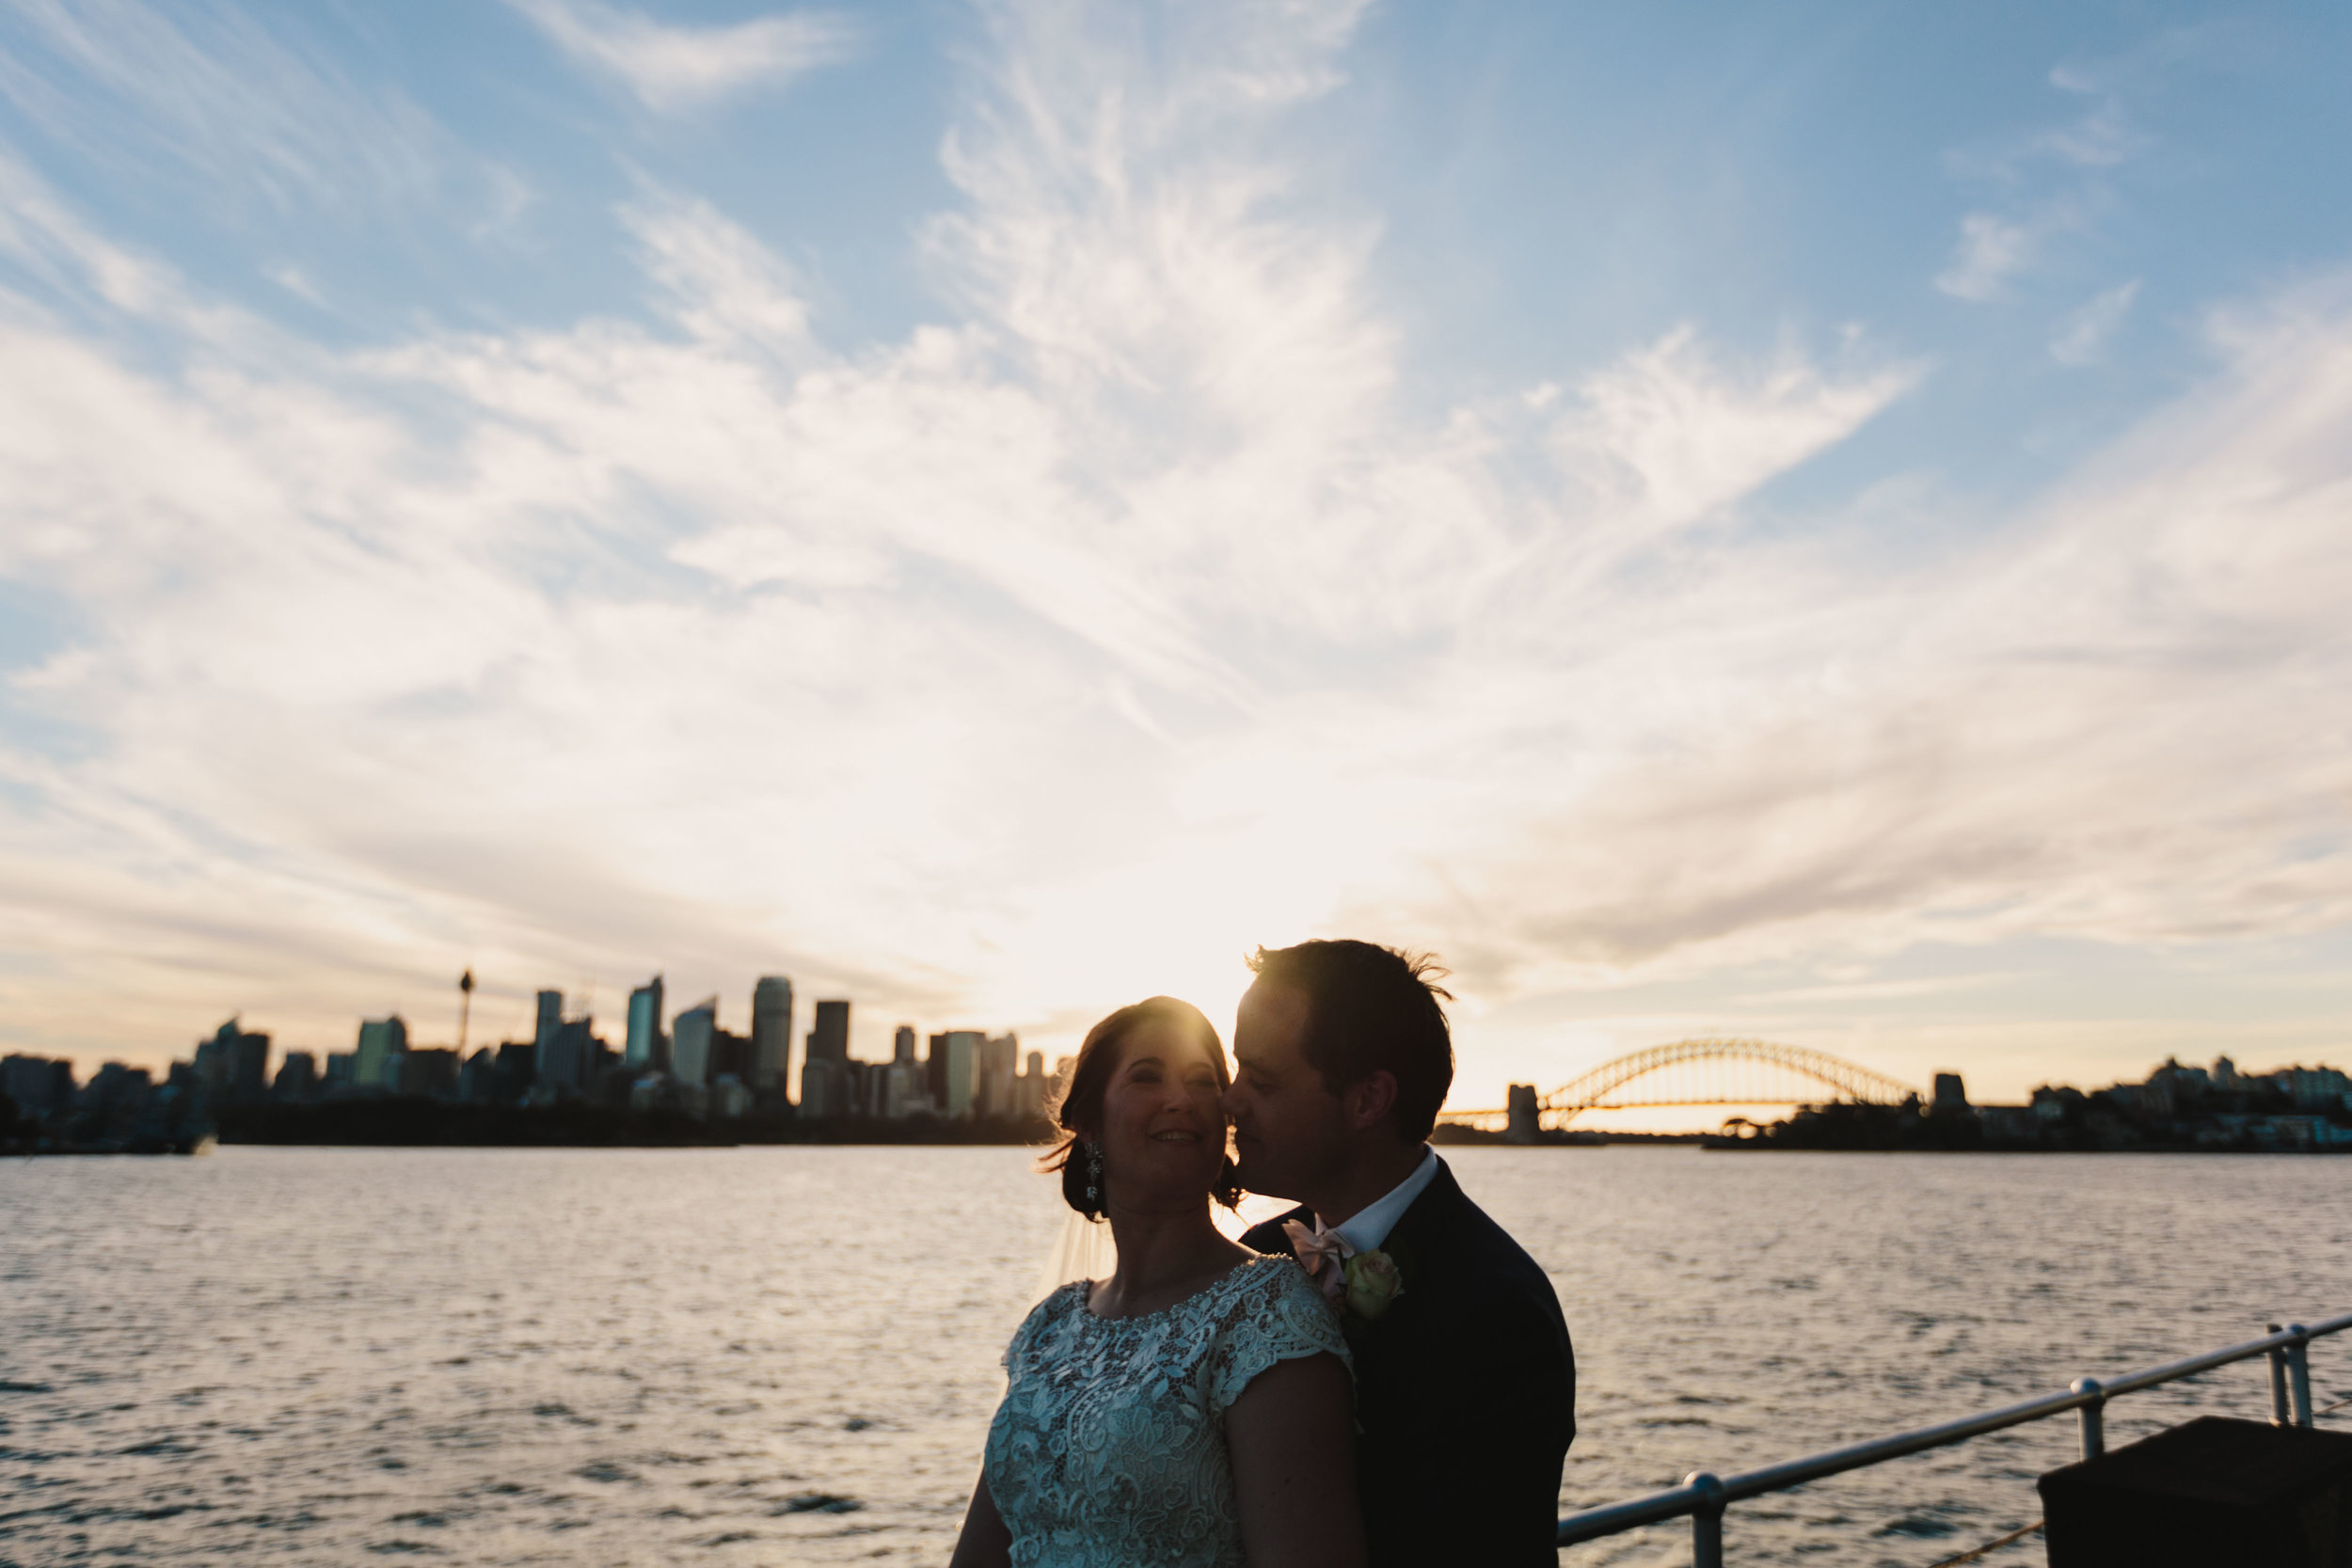 Bride and groom on Sydney harbour at sunset. Relaxed, candid wedding photography. Sydney wedding.